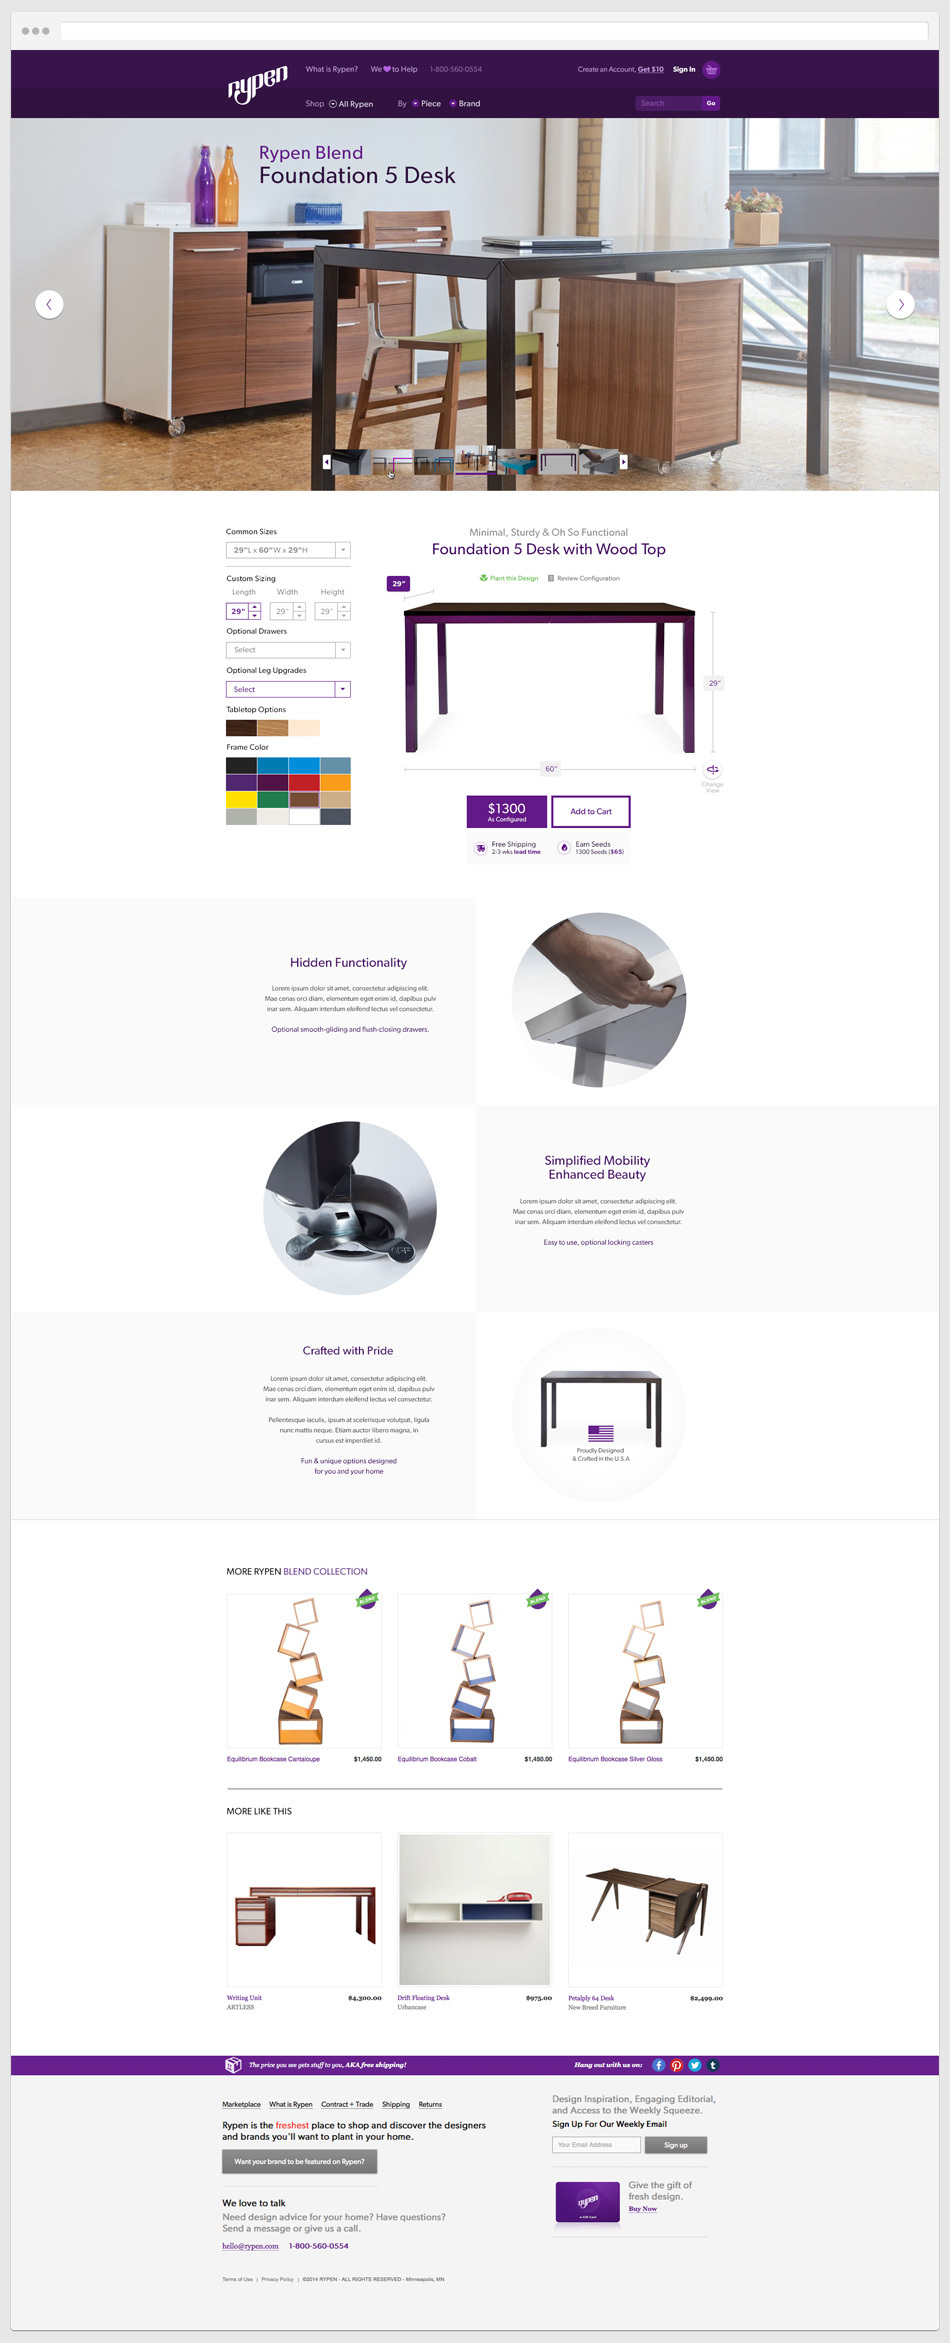 Rypen_Product_Detail_Browser_950